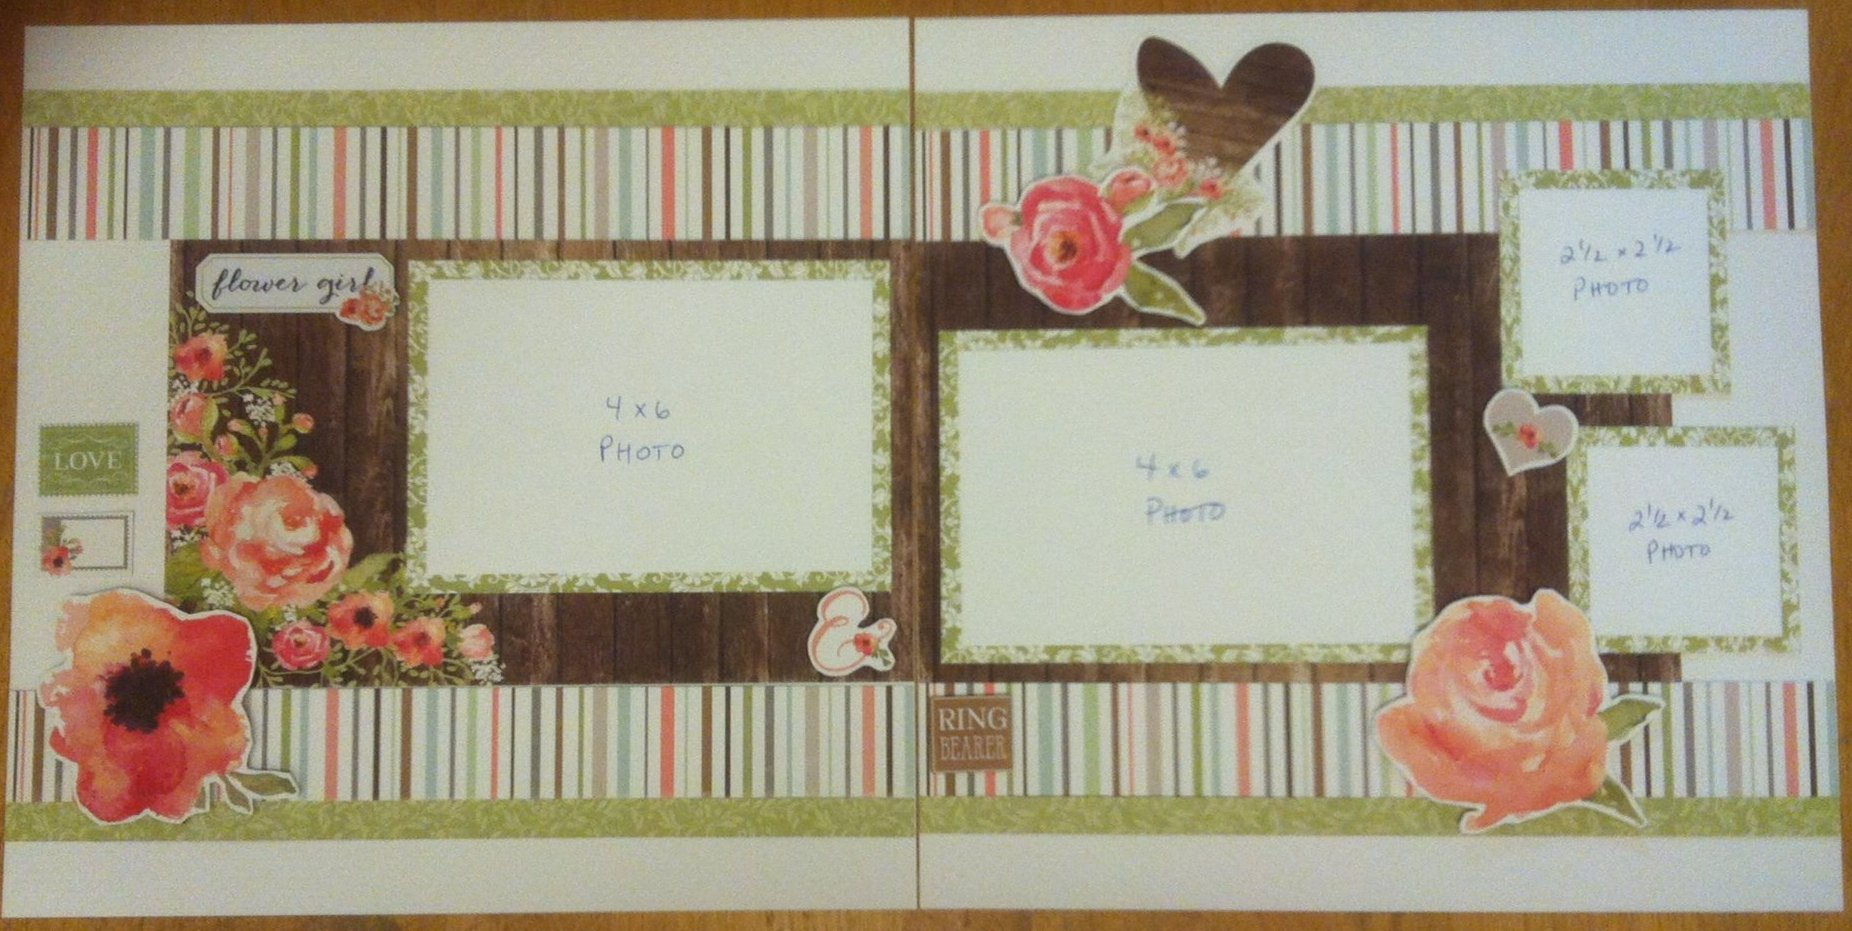 How to make a romantic scrapbook - 1 2 3